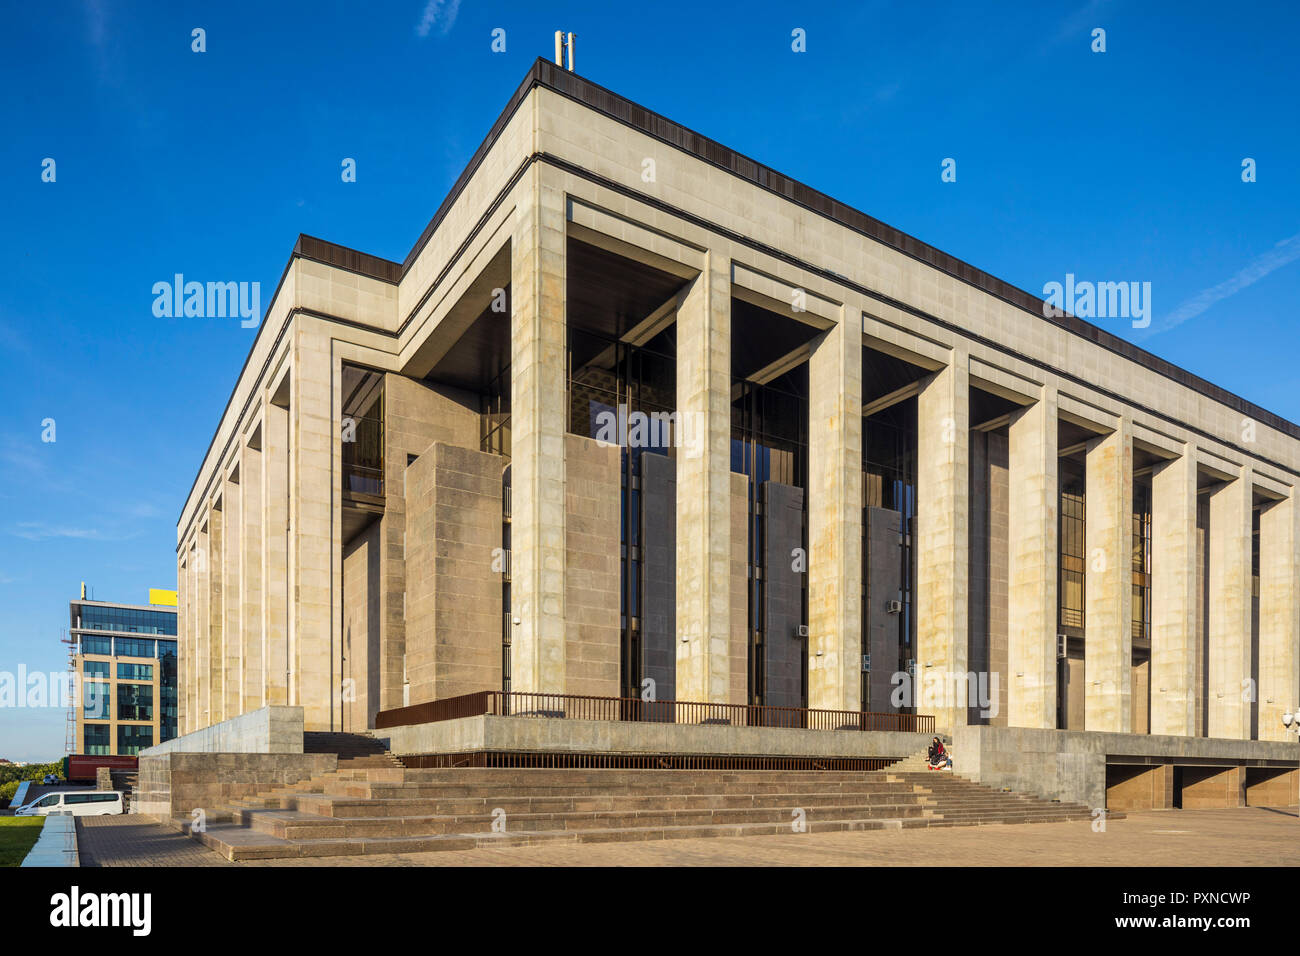 Palace of Republic, Minsk, Belarus Stock Photo